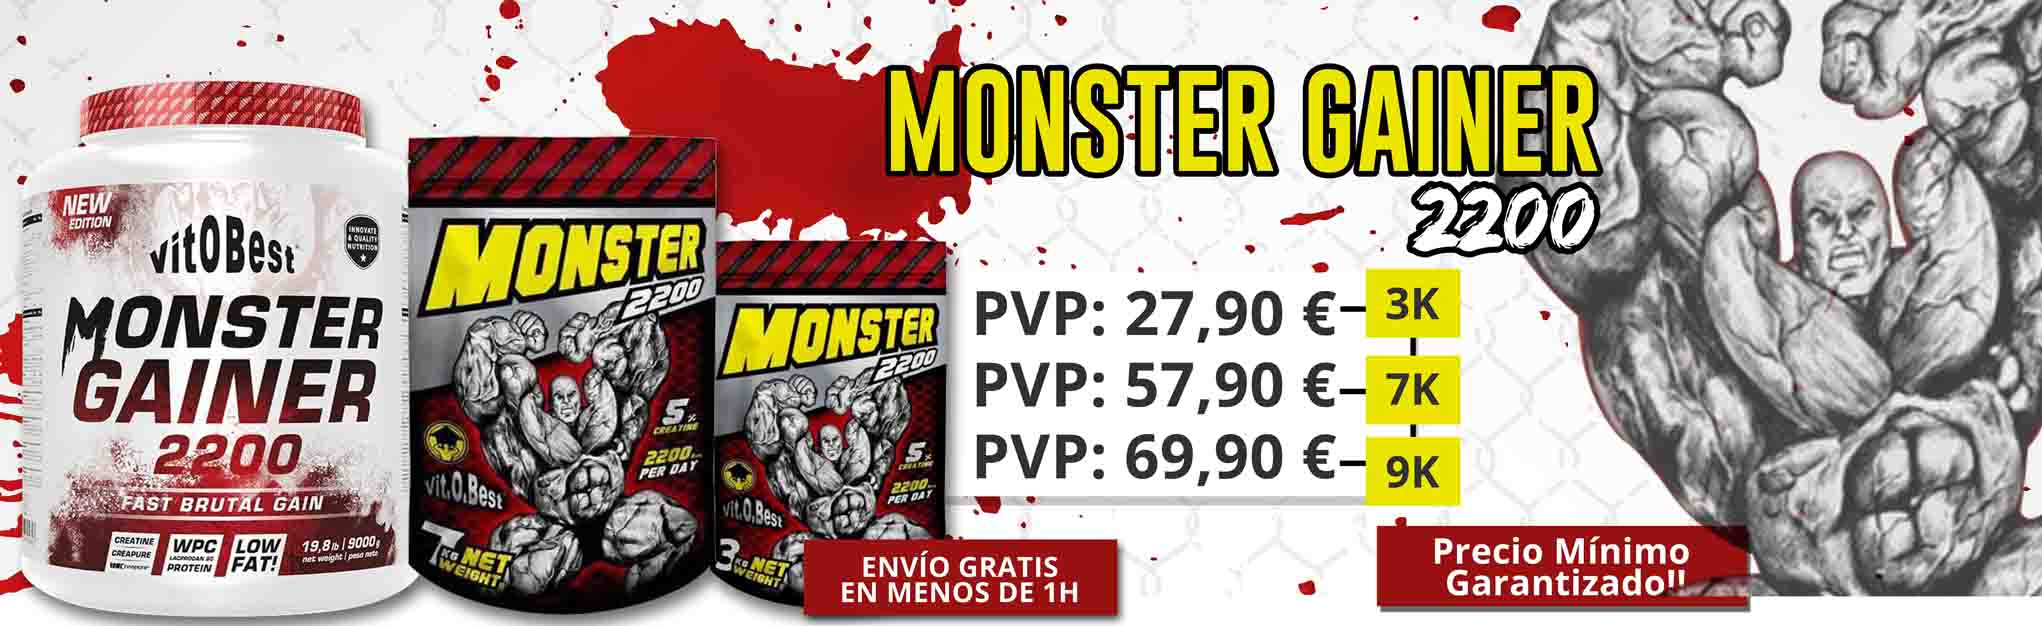 MONSTER GAINER